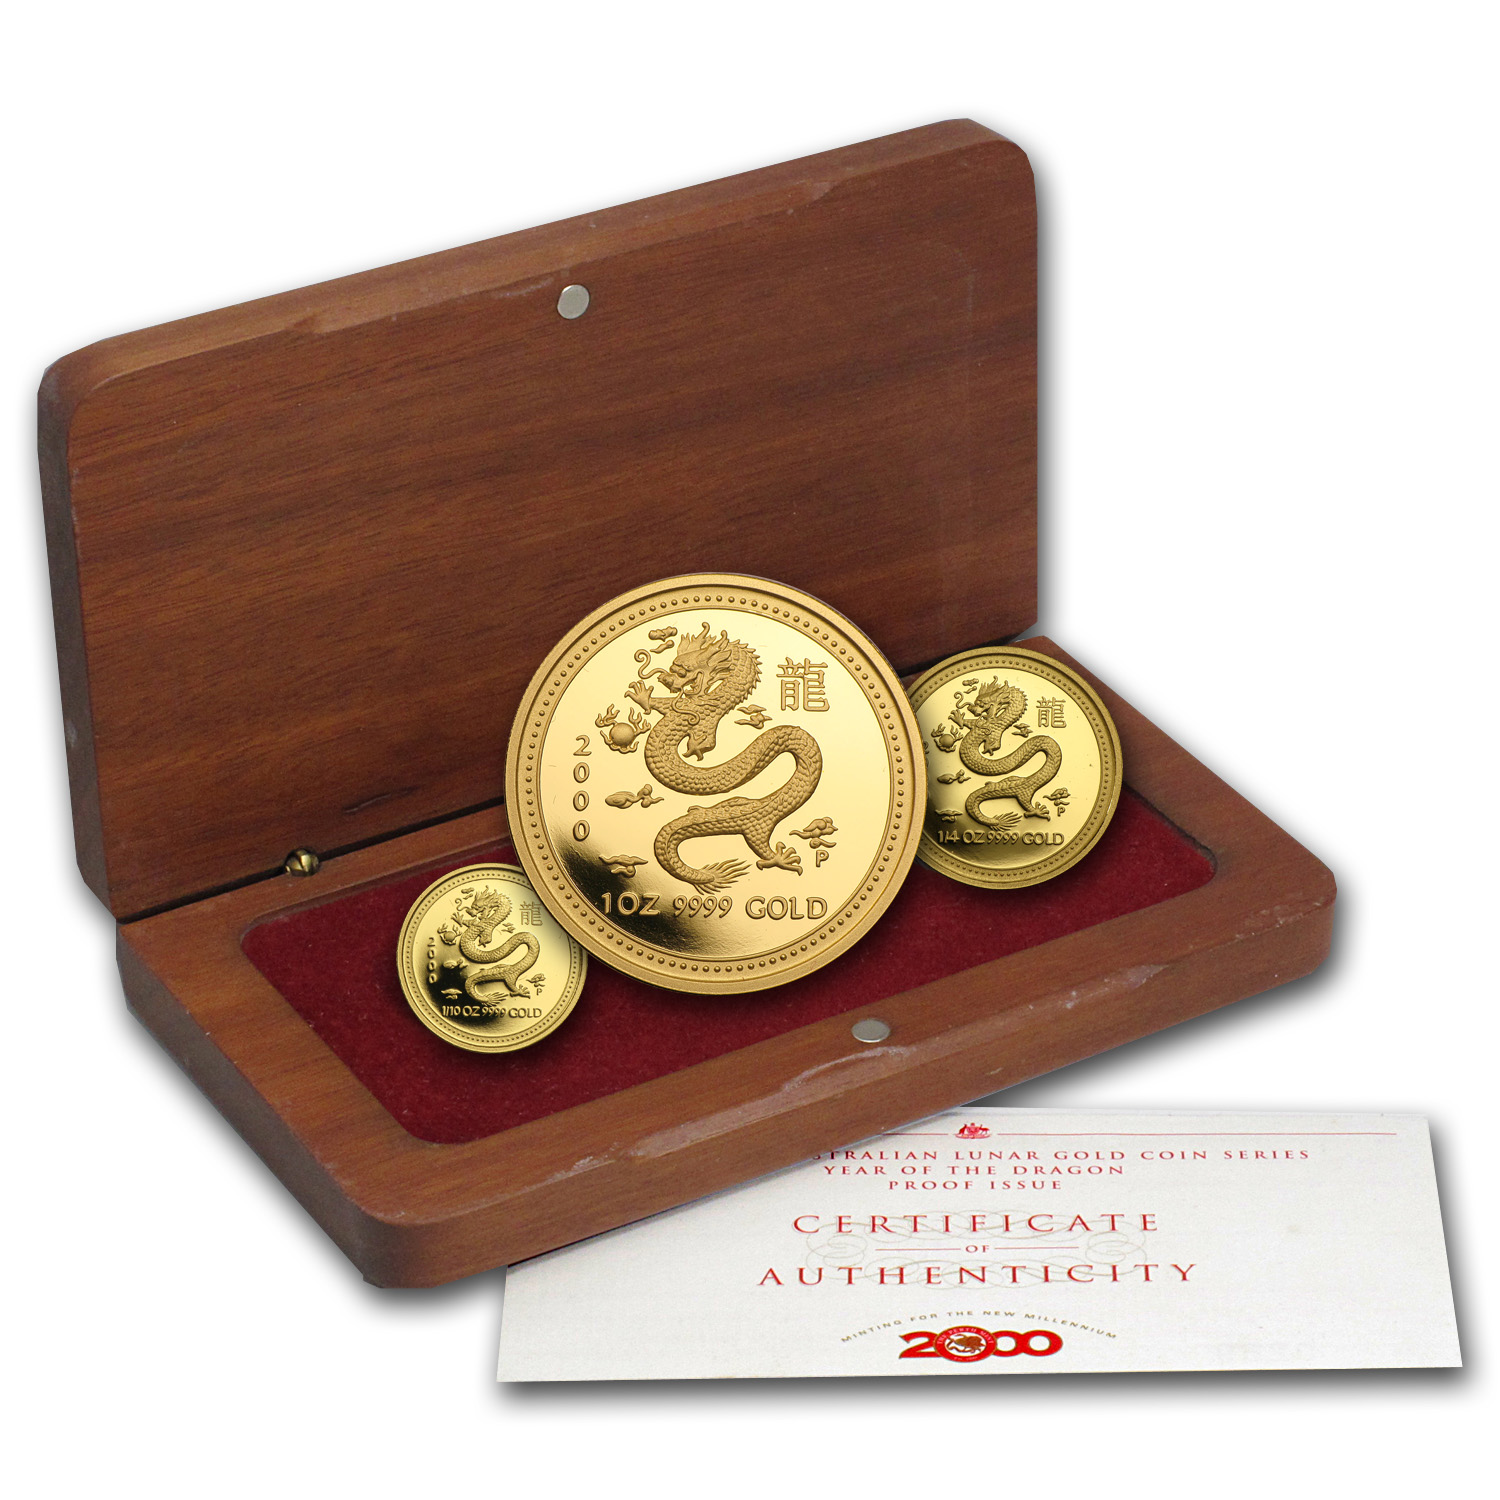 2000 3-Coin Gold Lunar Year of the Dragon Proof Set (Series I)